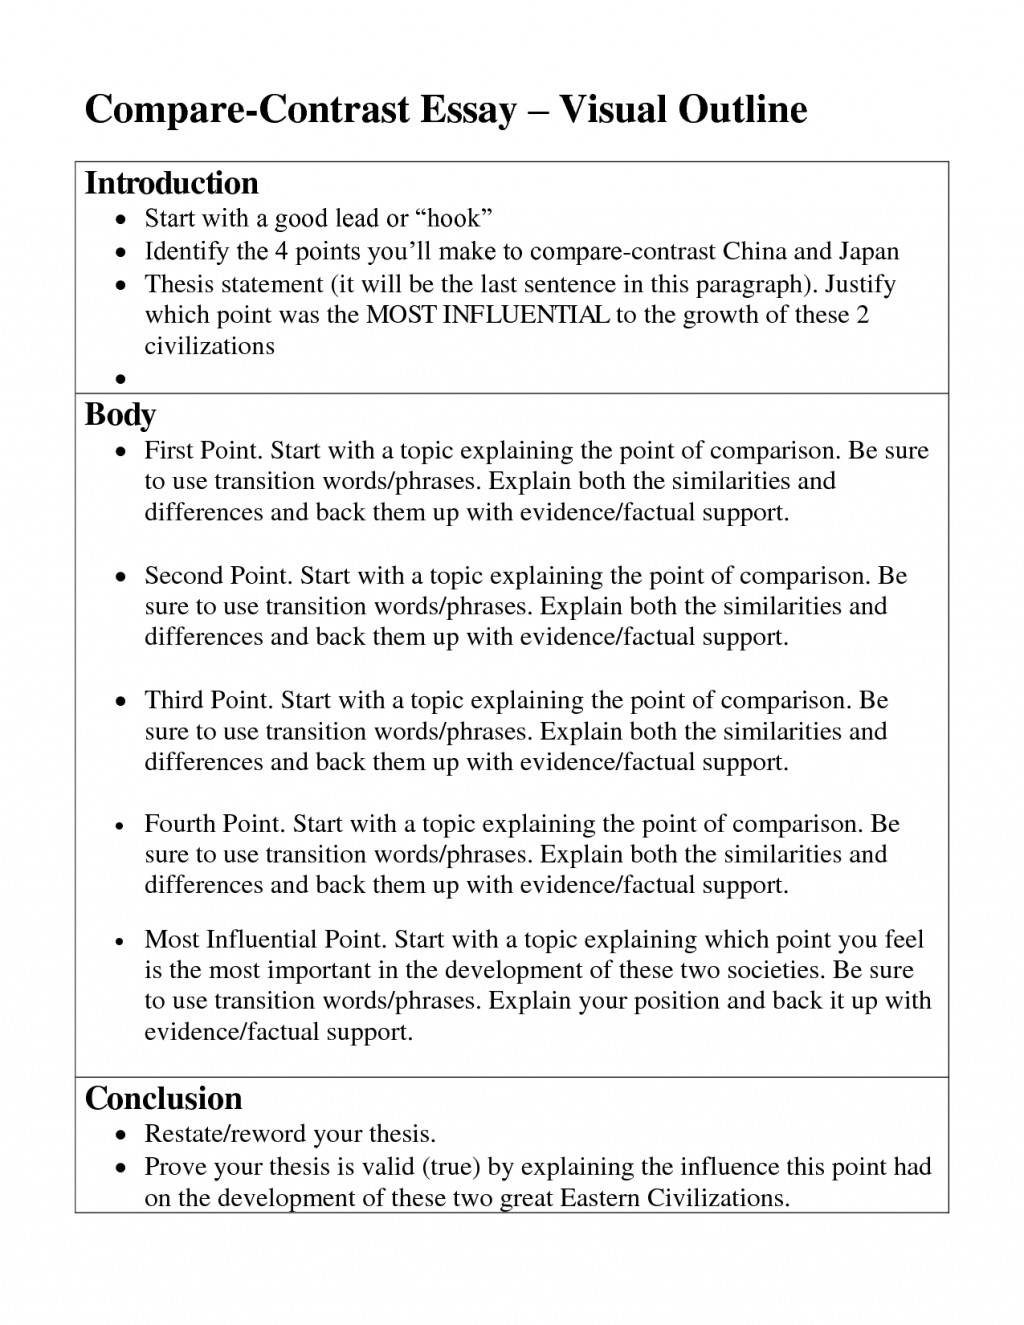 010 Compare Contrast Essays Essay Best Topics Technology Comparison Outline And Format Large